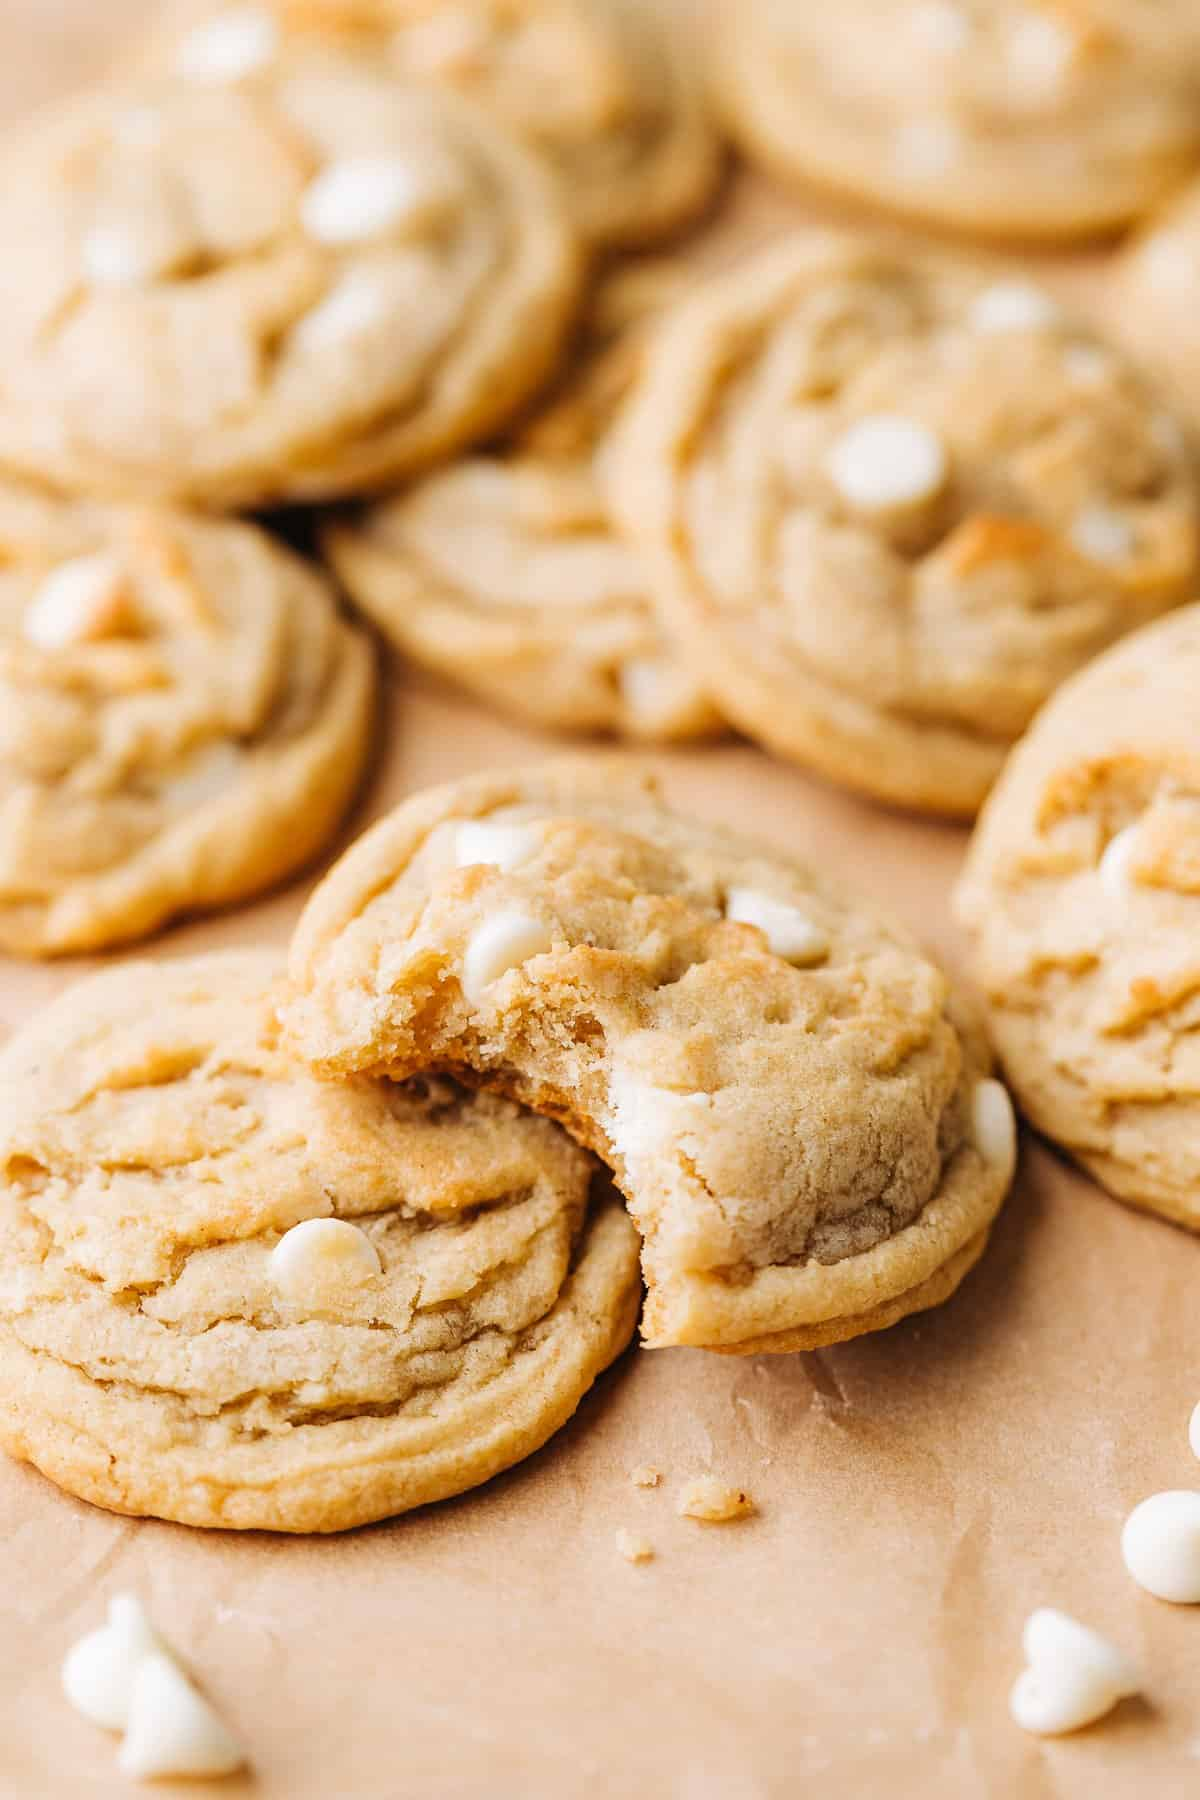 banana white chocolate chip cookies on brown parchment paper.